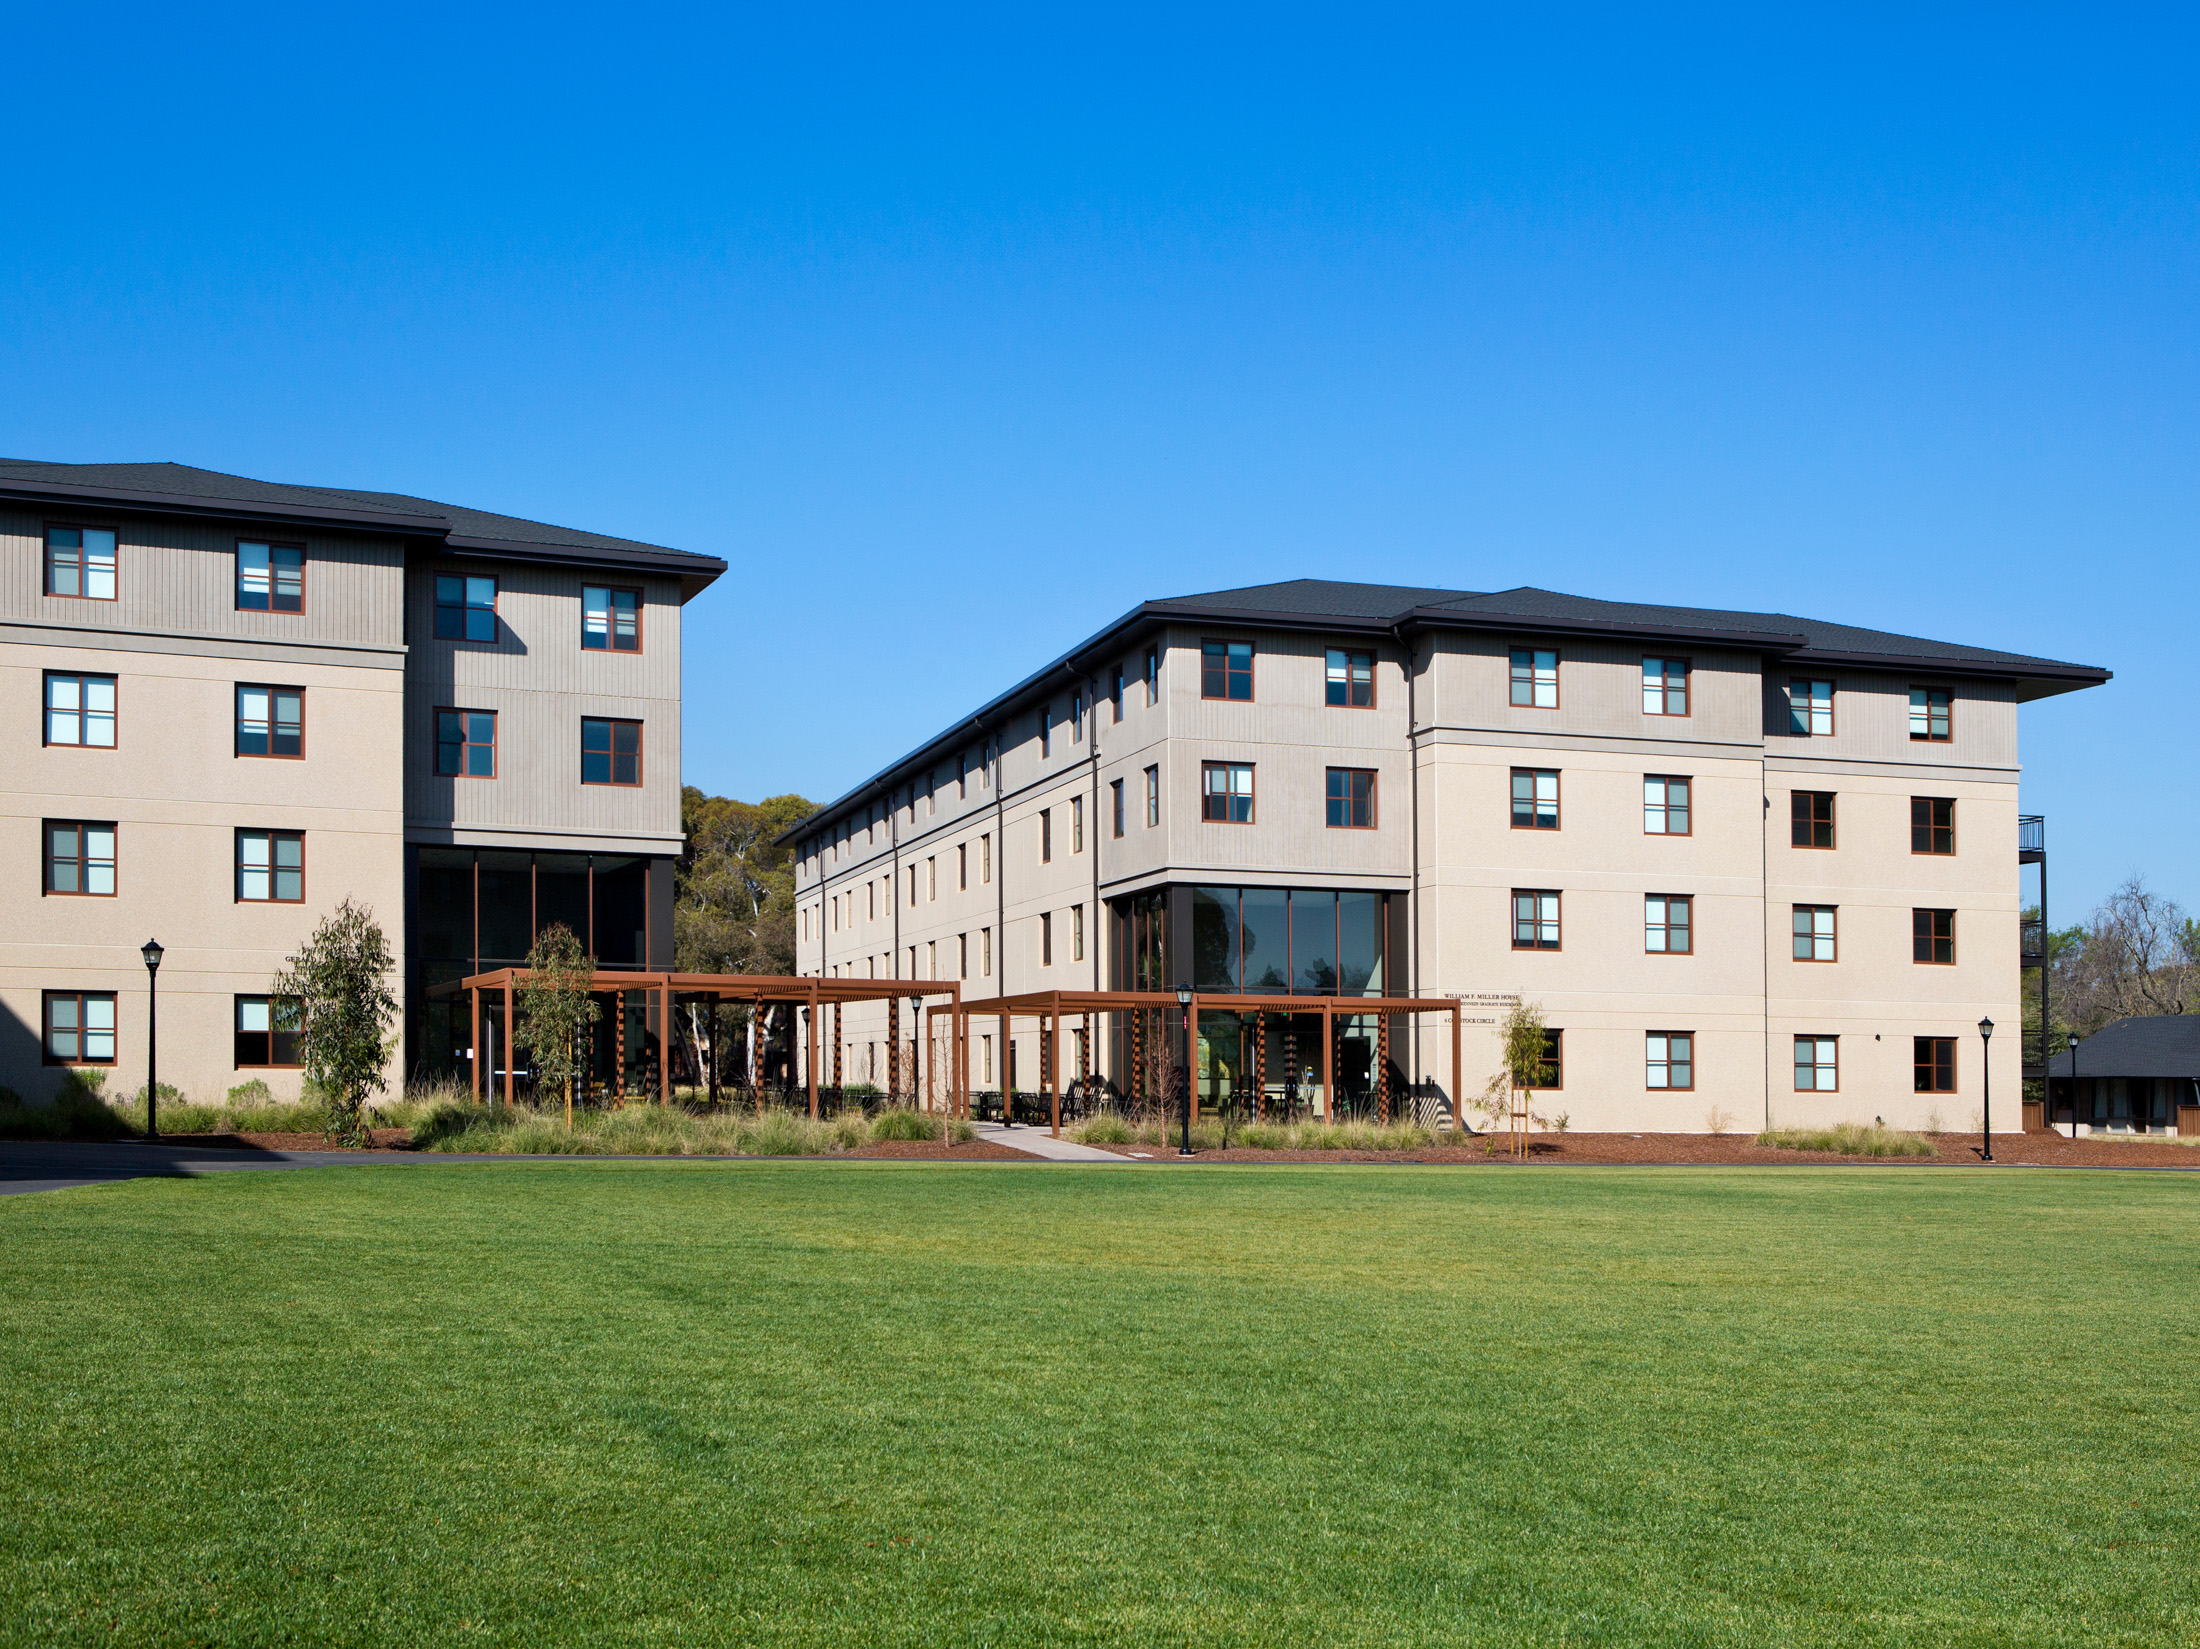 Image of Donald Kennedy Graduate Residences, Stanford